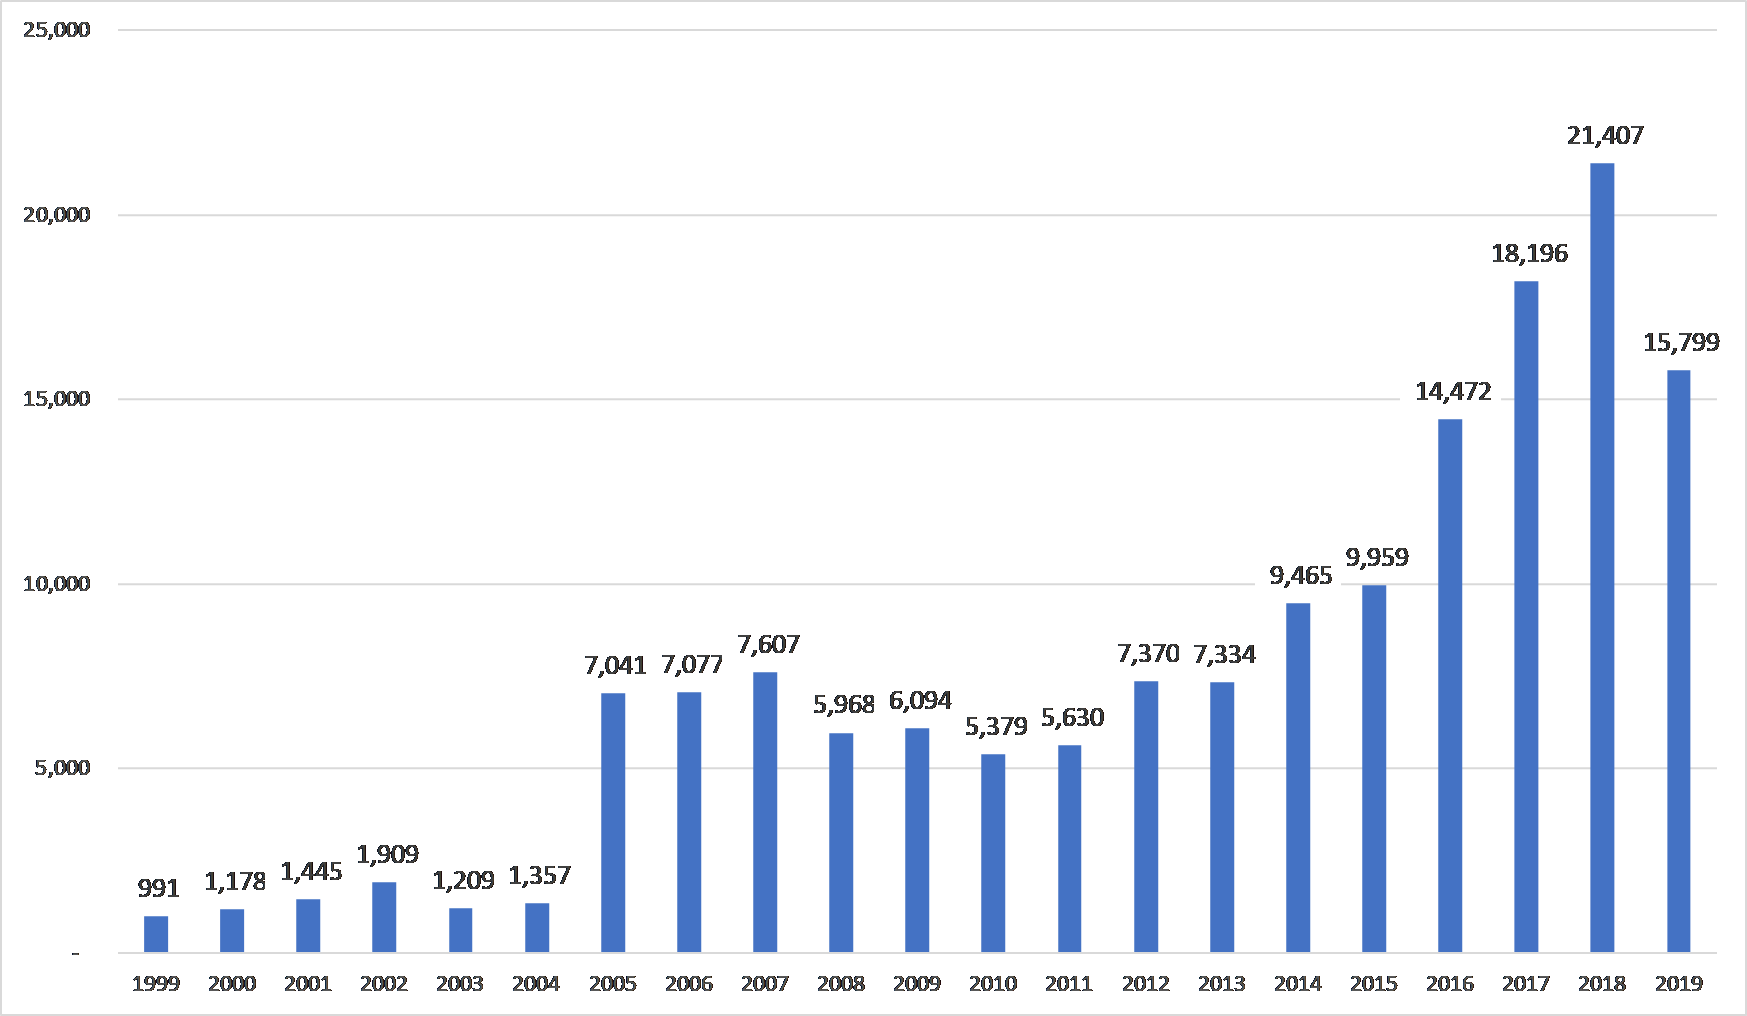 Comparison of Reserved CVE Entries by Year for All Quarters - CYQ32019